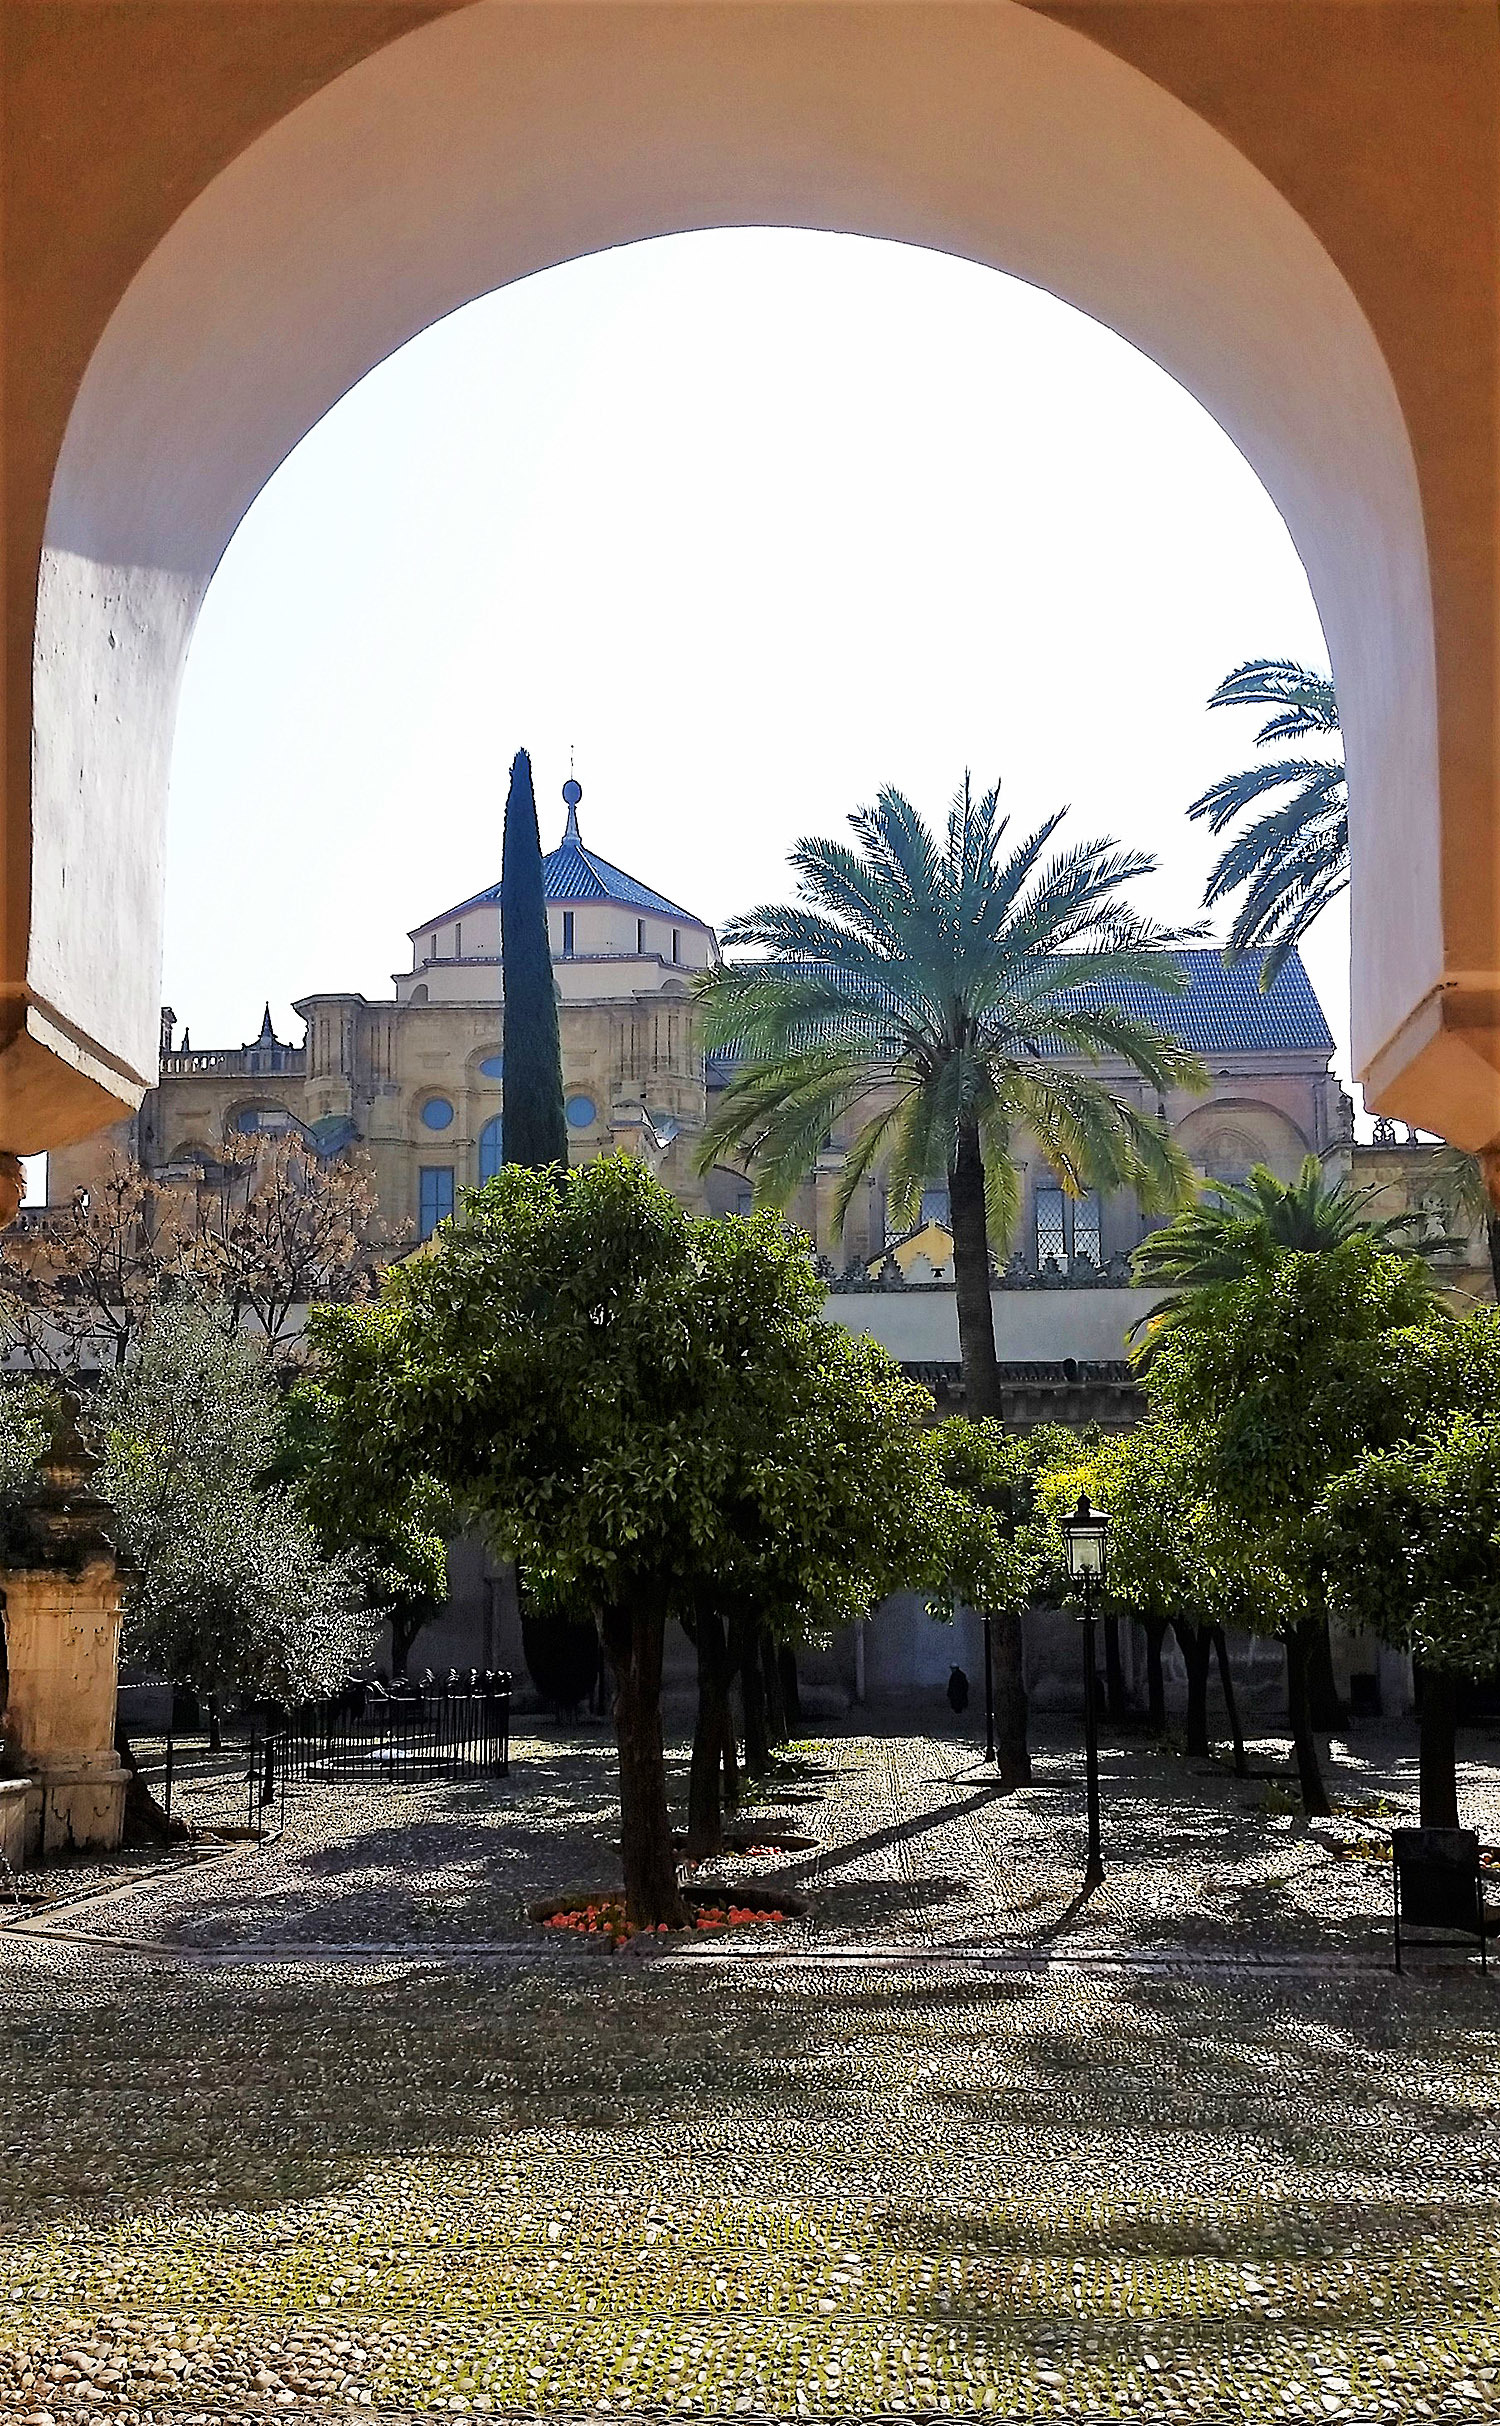 View of the cathedral-mosque from the side of the orchards.